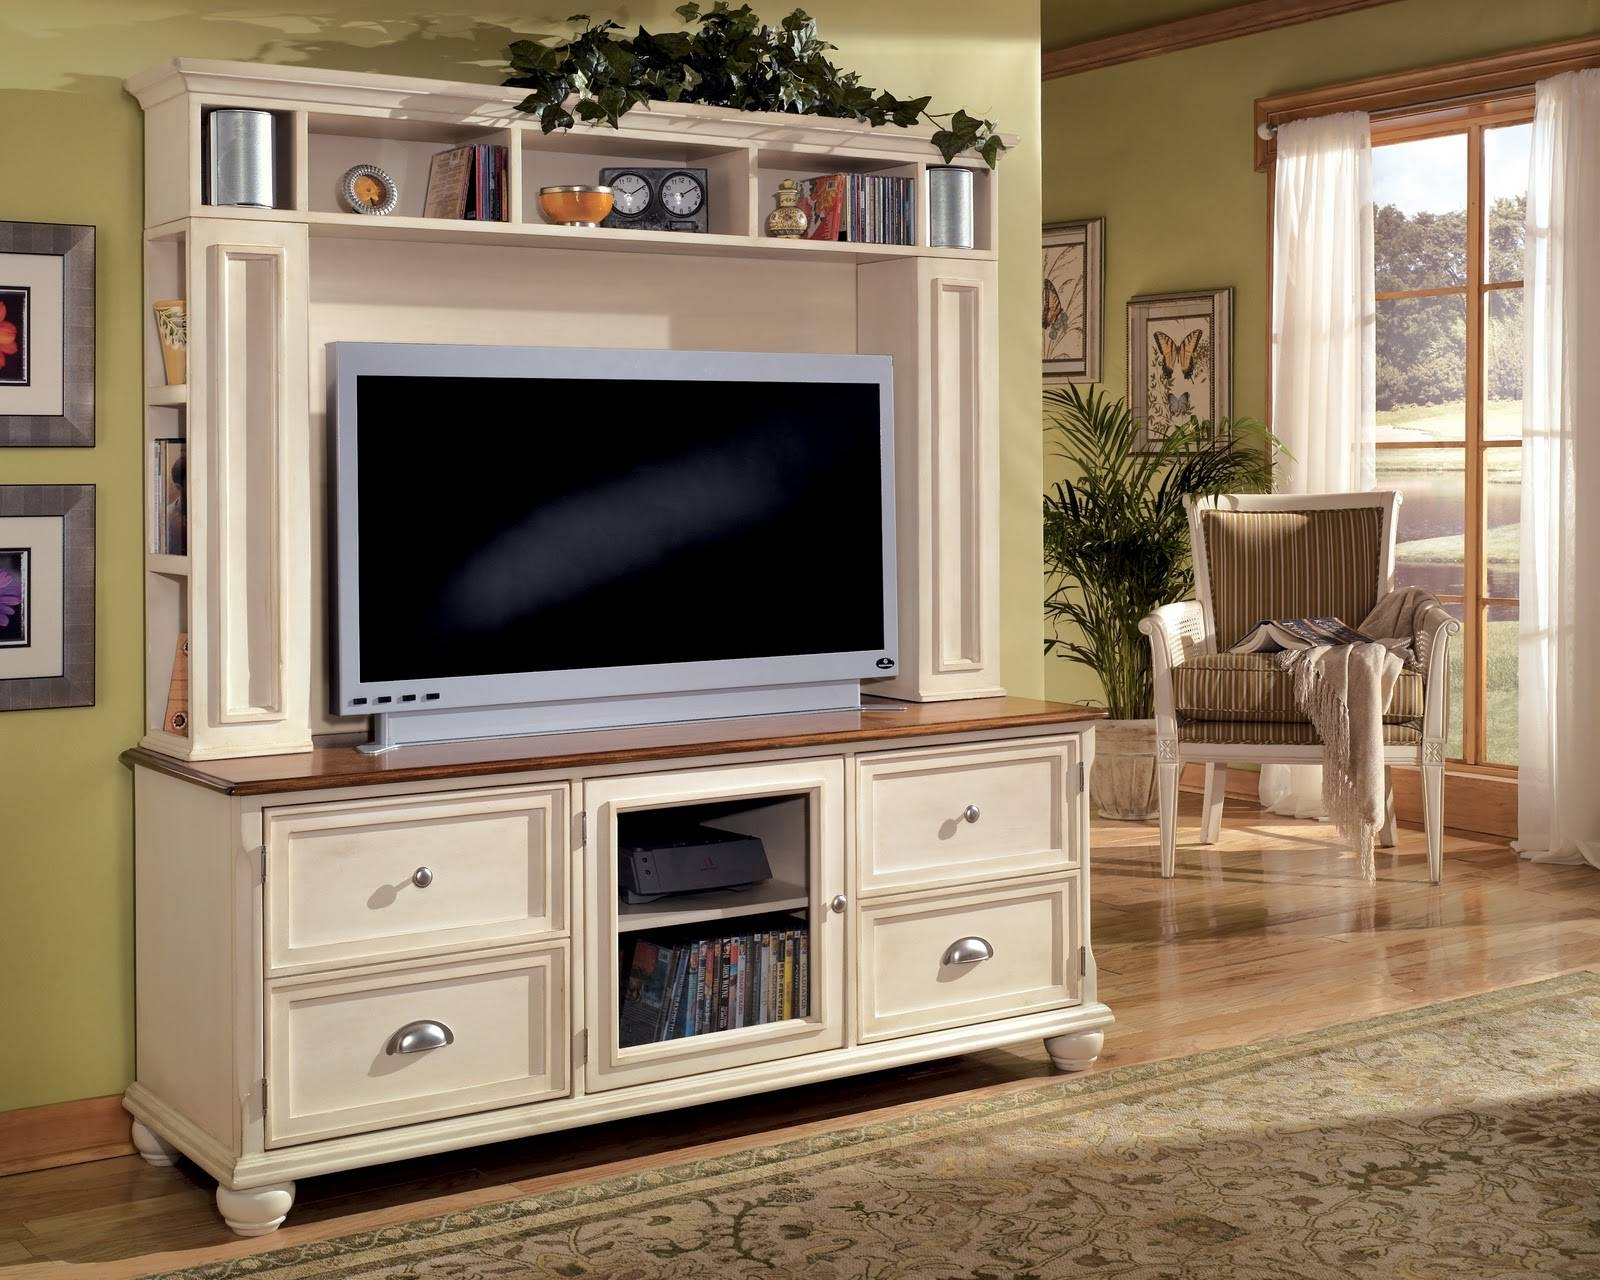 Furniture. White Wood French Country Style Big Screen Tv Stand pertaining to Country Style Tv Cabinets (Image 8 of 15)